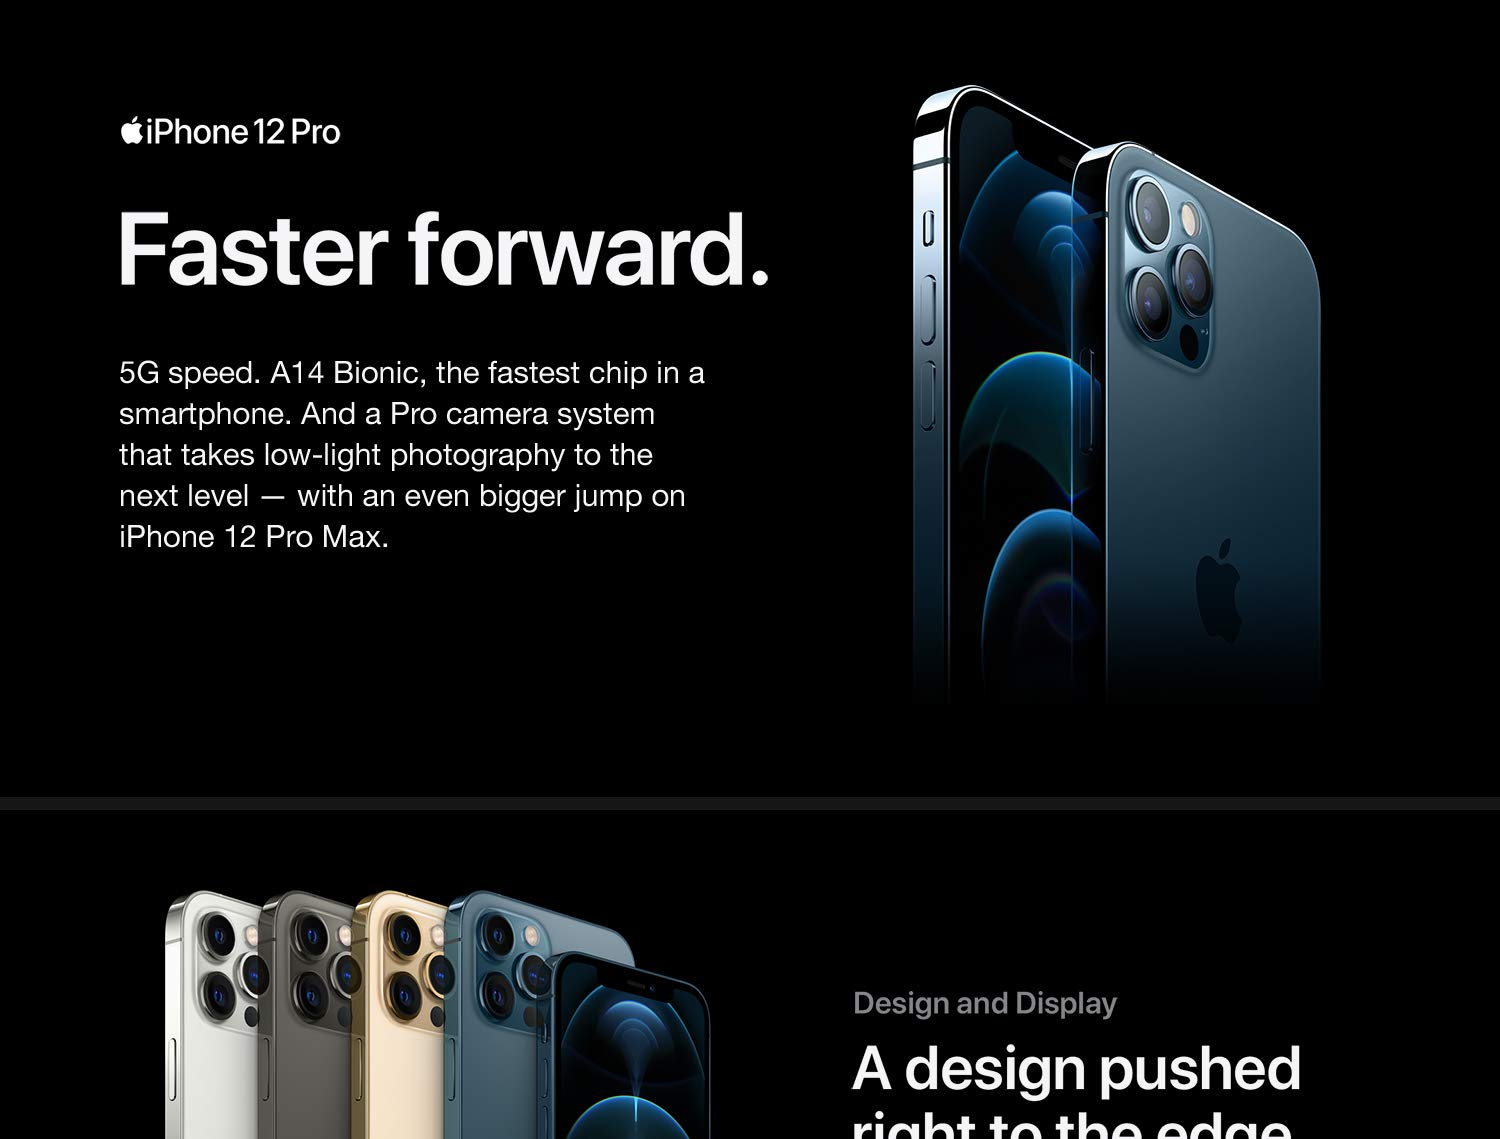 iPhone 12 Pro. 5G speed. A14 Bionic, the fastest chip in a smartphone.